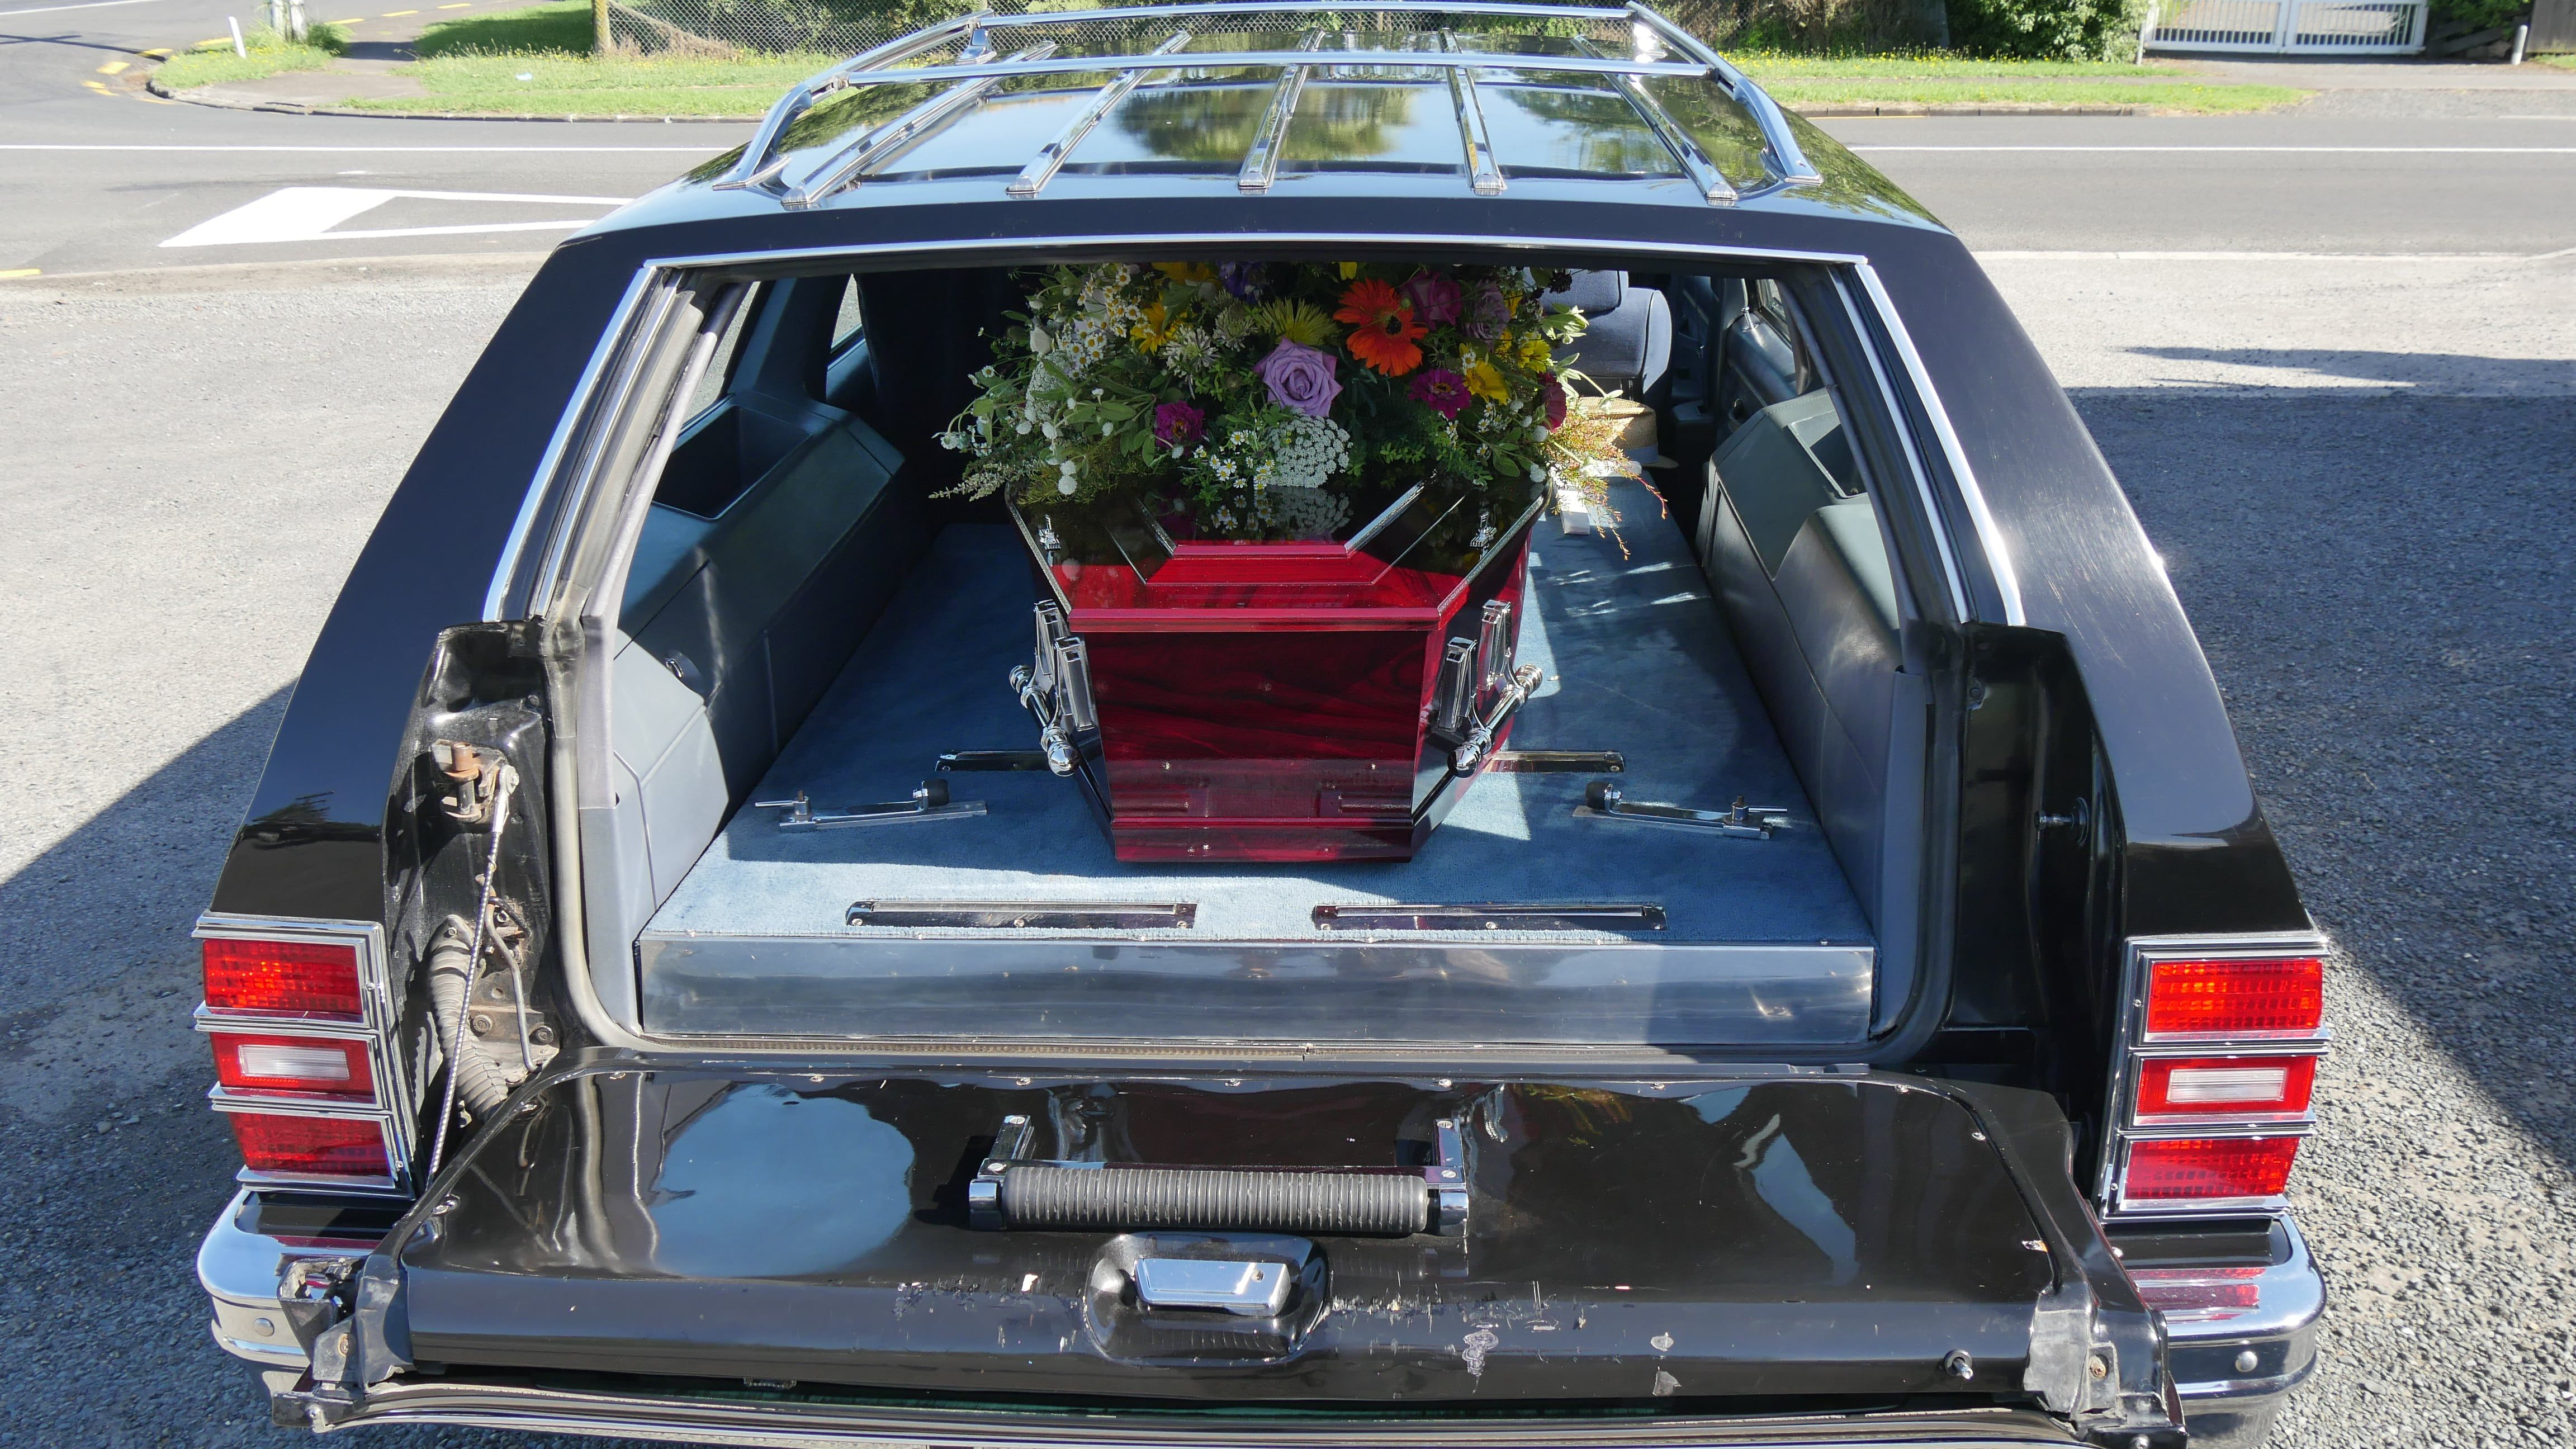 Funeral hearse with colorful flowers above casket.